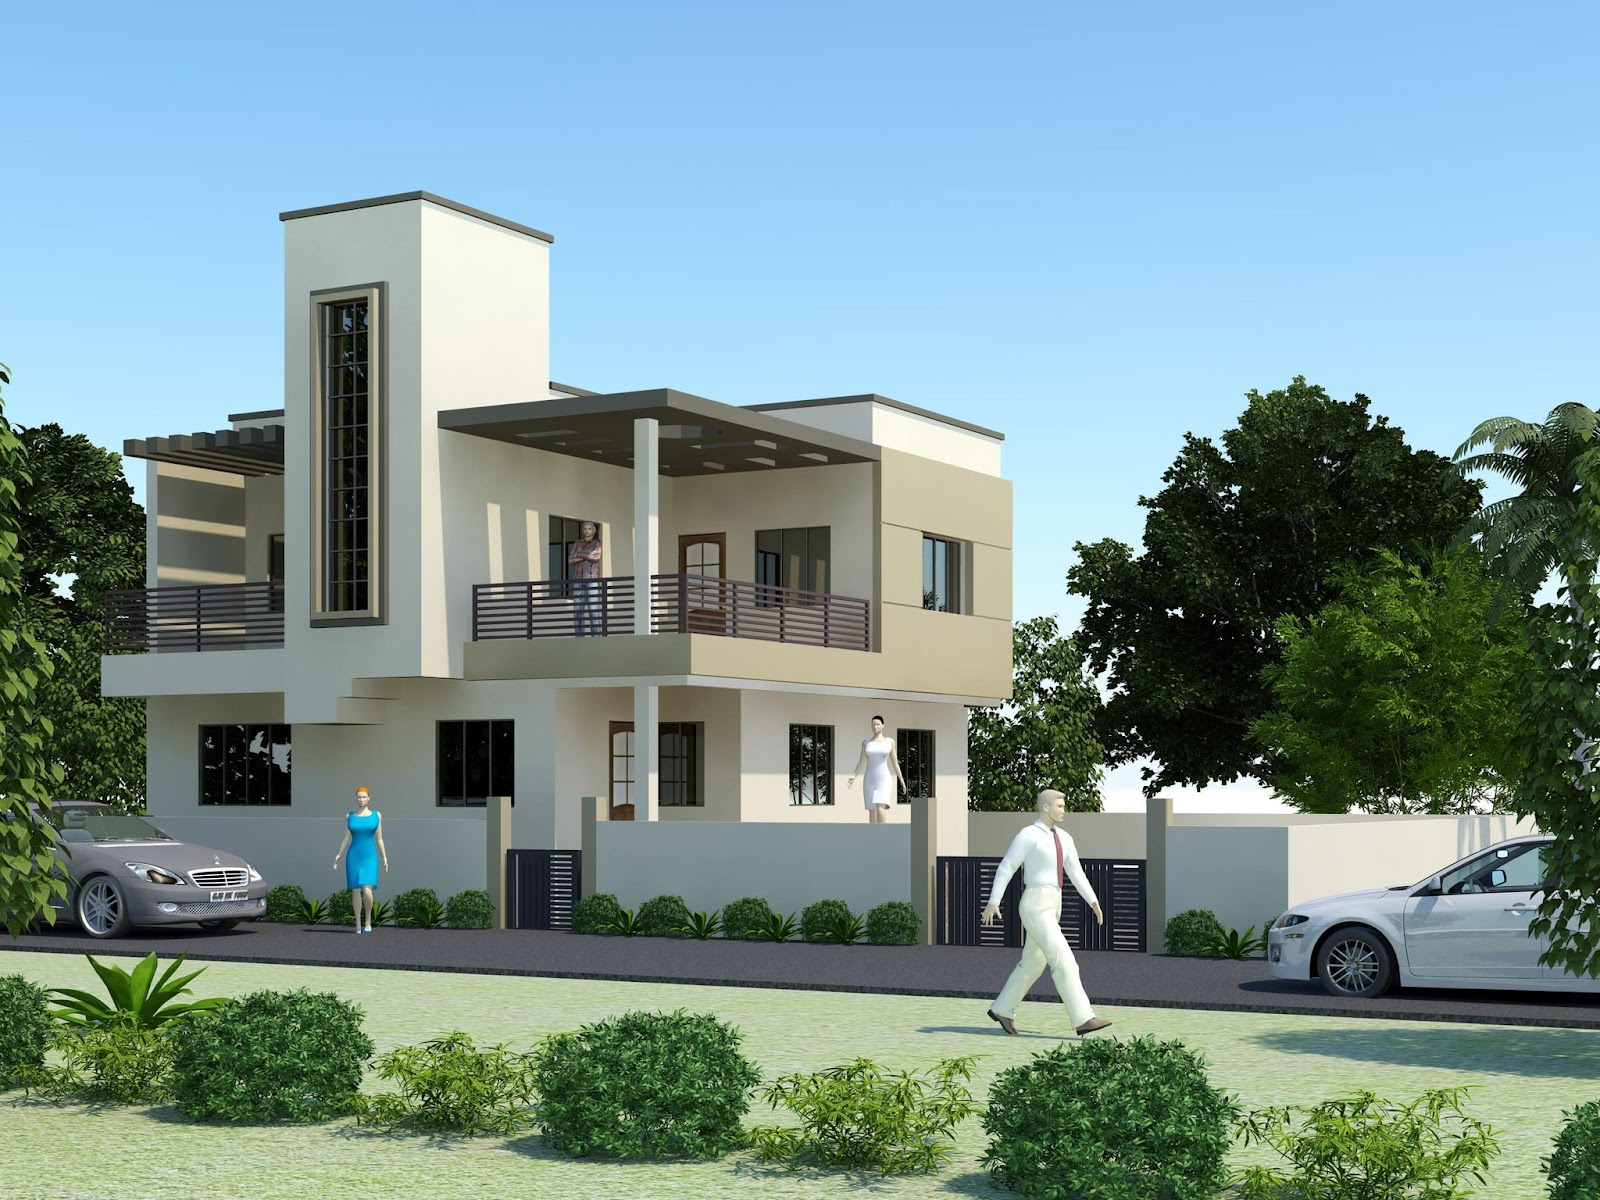 Modern homes exterior designs front views pictures for Modern house front design